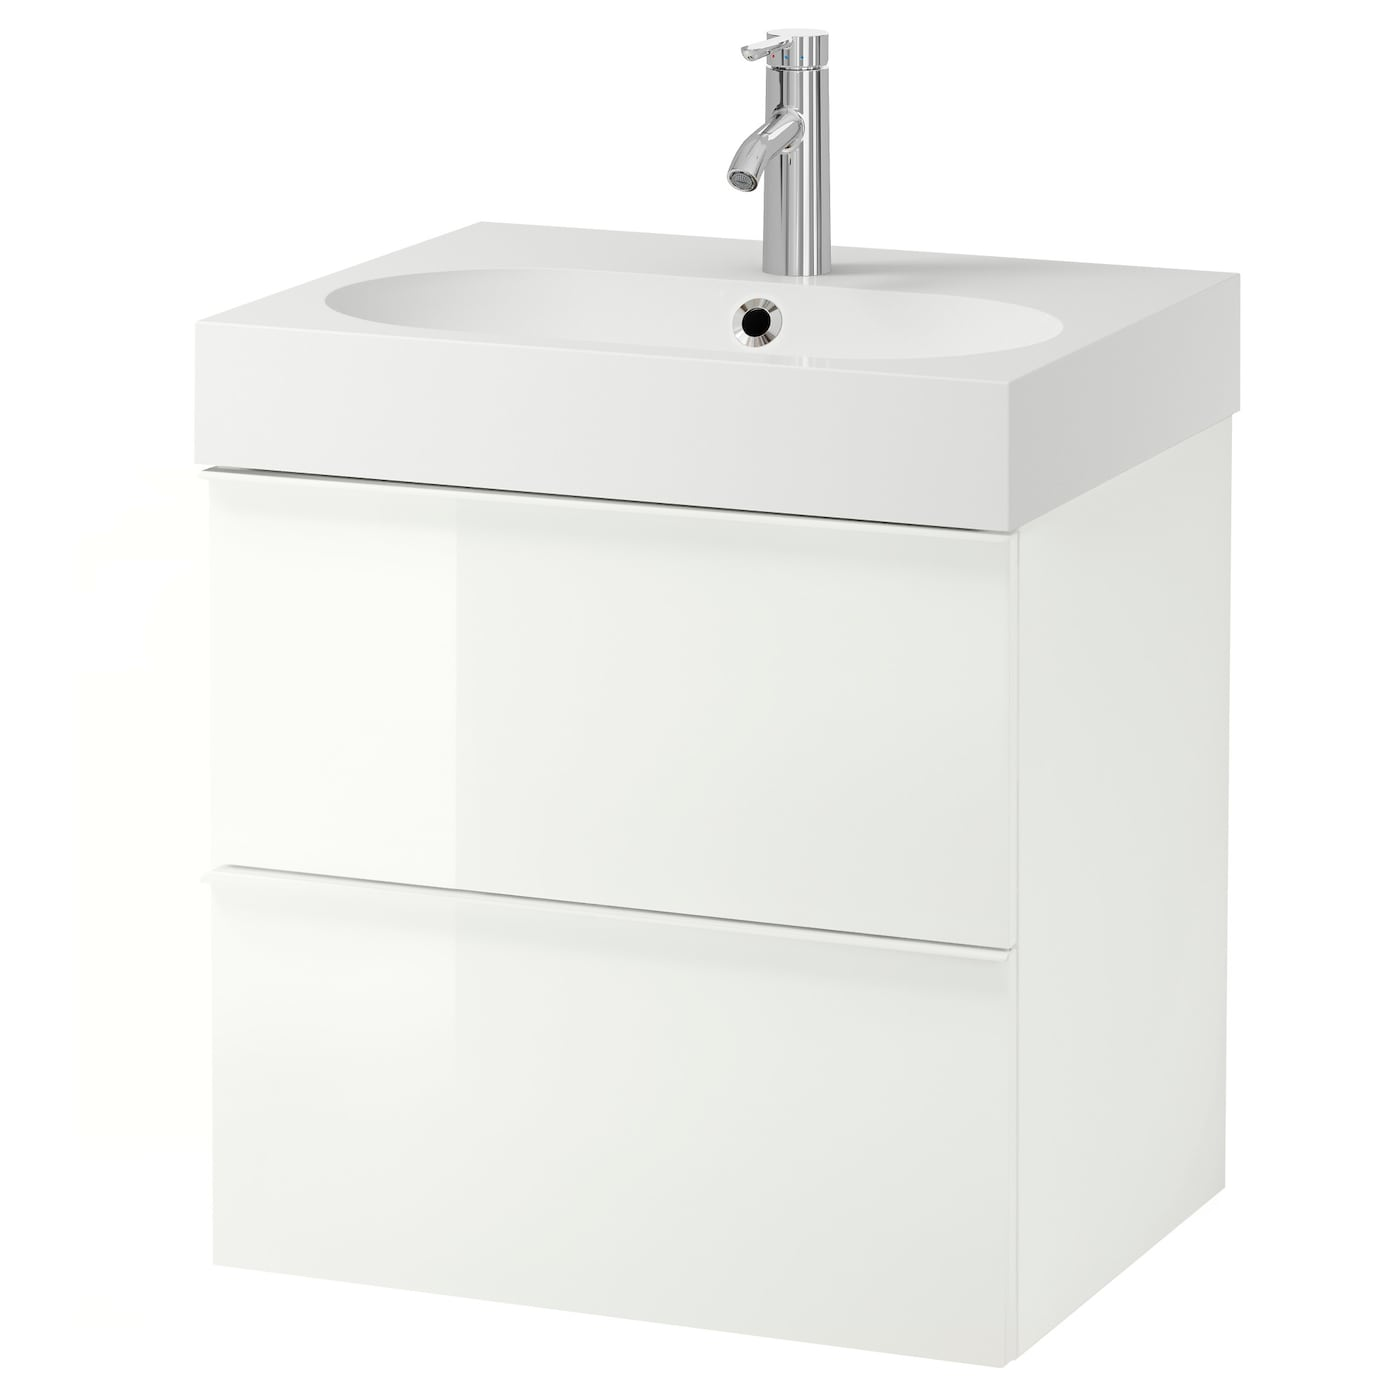 br viken godmorgon wash stand with 2 drawers high gloss white 60x49x68 cm ikea. Black Bedroom Furniture Sets. Home Design Ideas